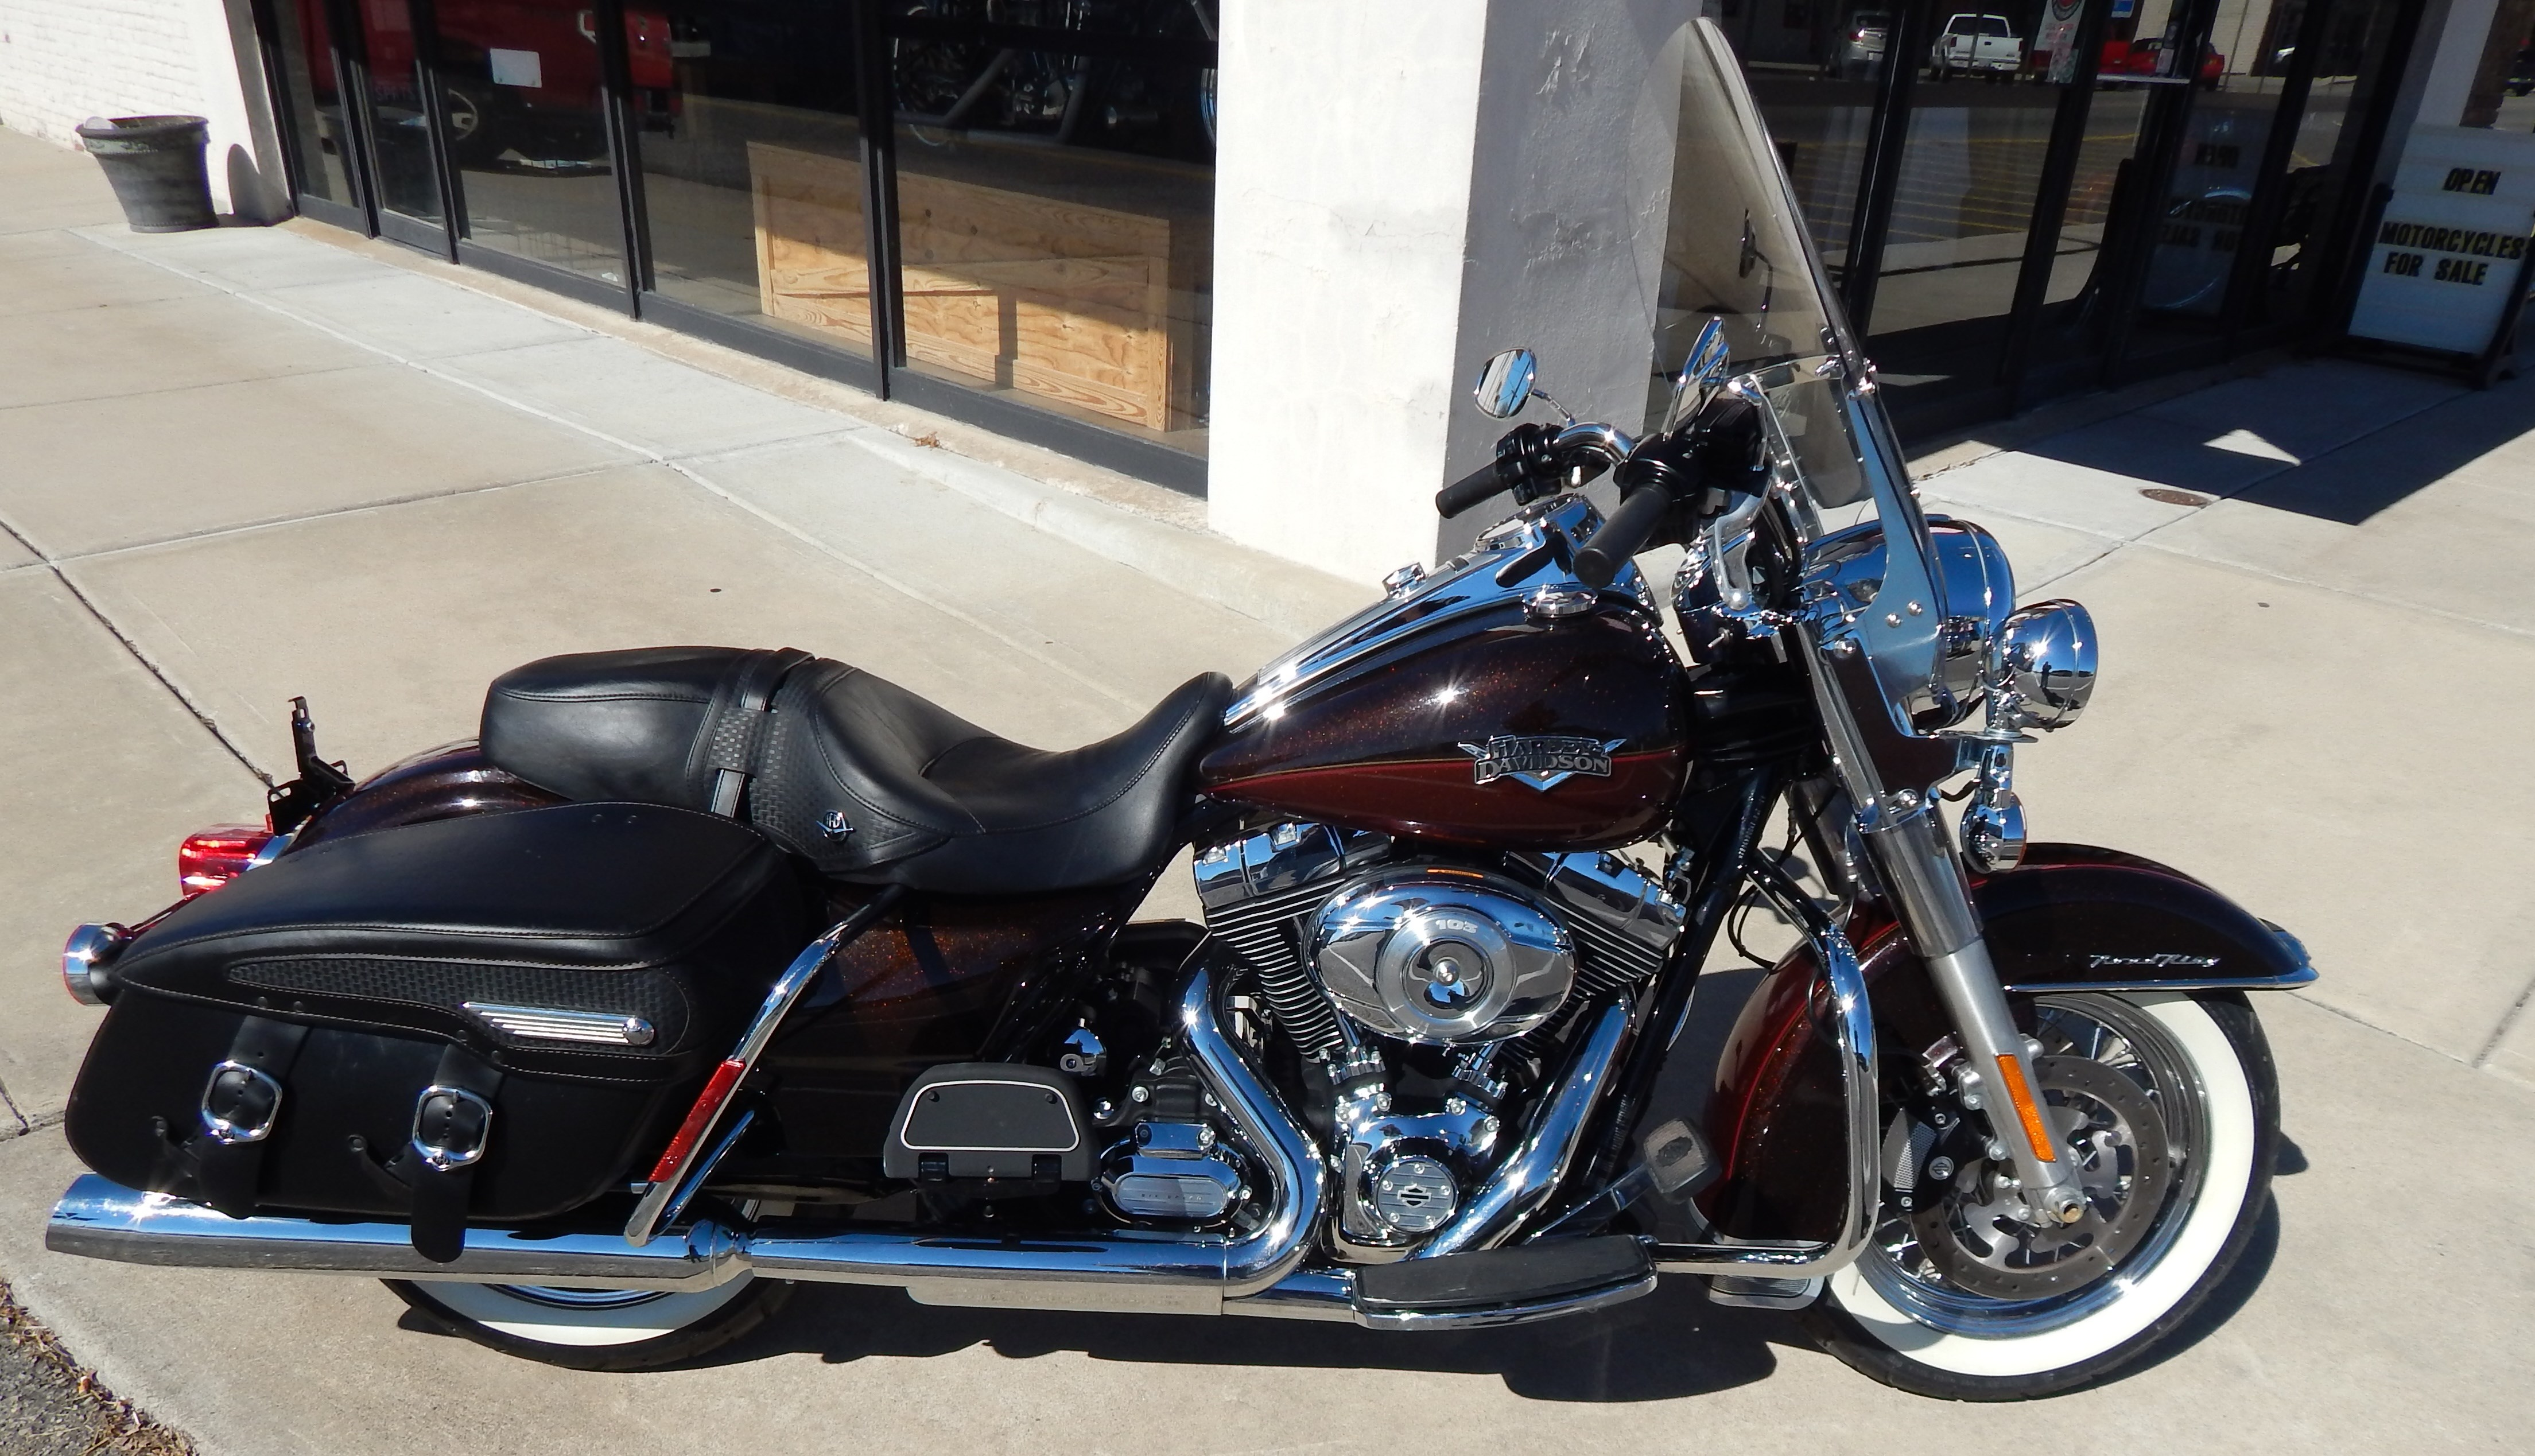 2011 harley davidson flhrc road king classic two tone. Black Bedroom Furniture Sets. Home Design Ideas